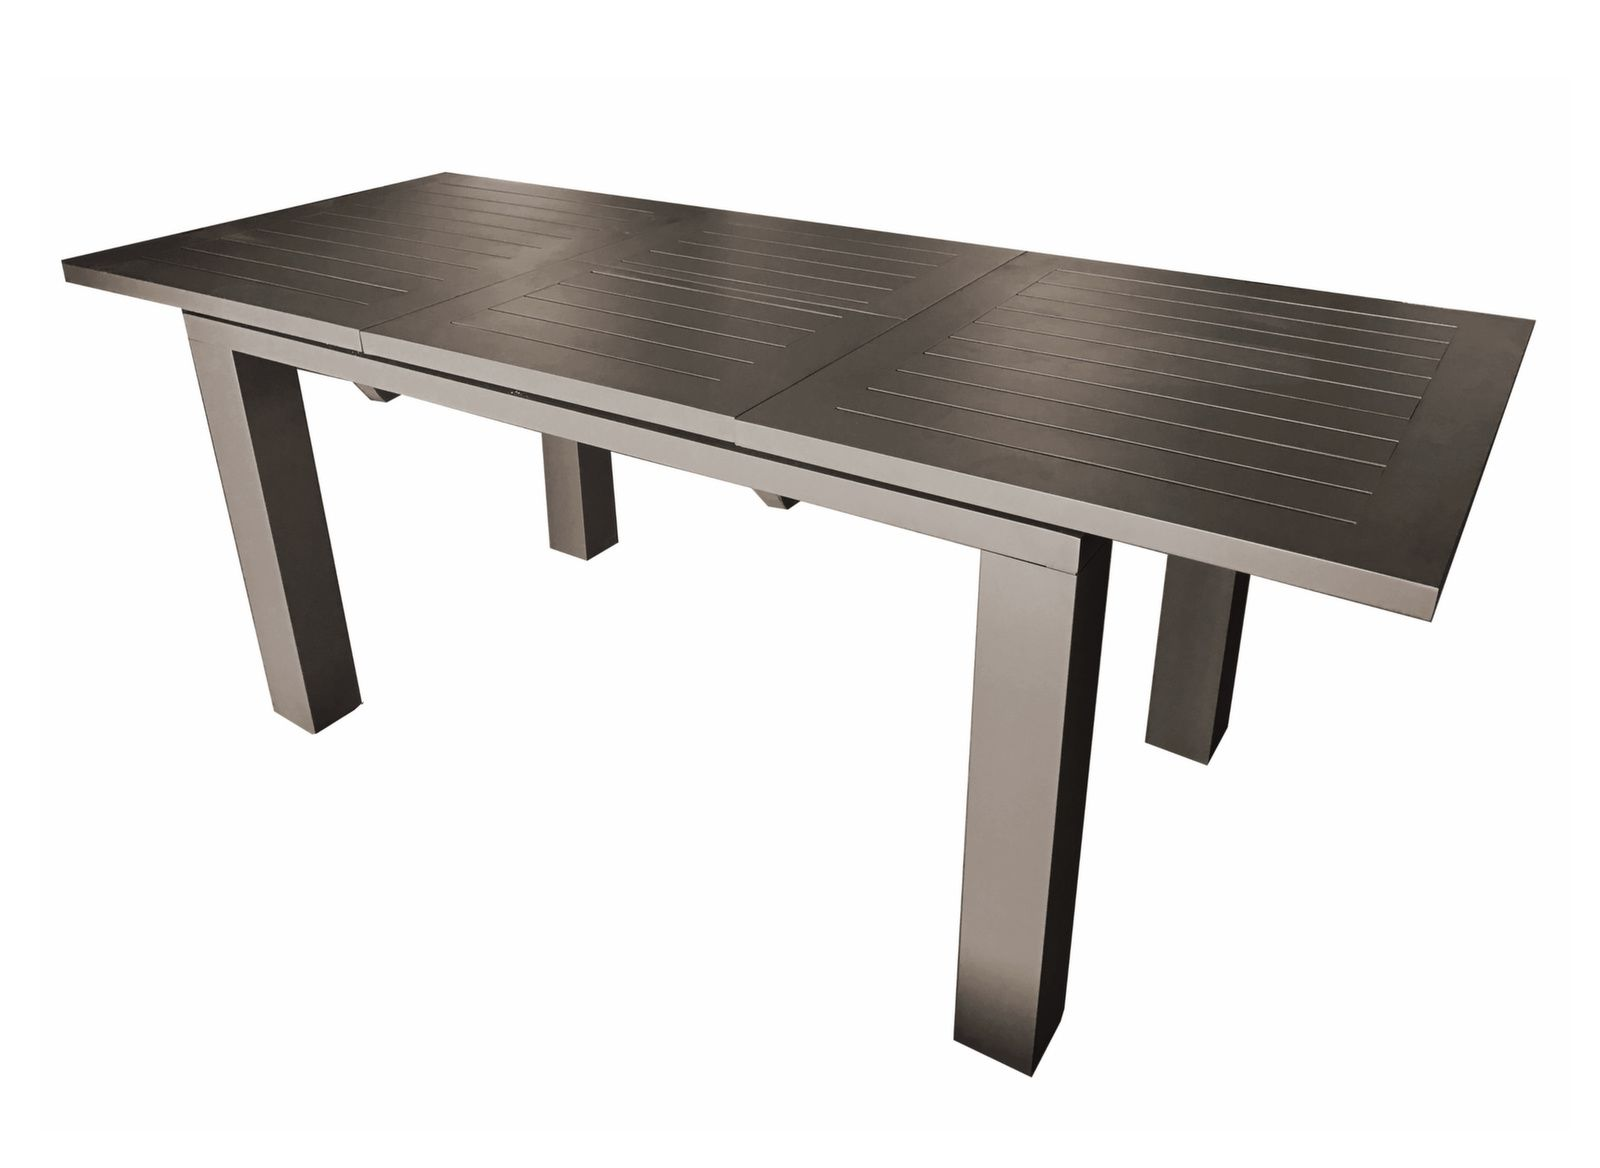 Table de jardin Elisa 180/240 cm (Finition Epoxy) - Proloisirs